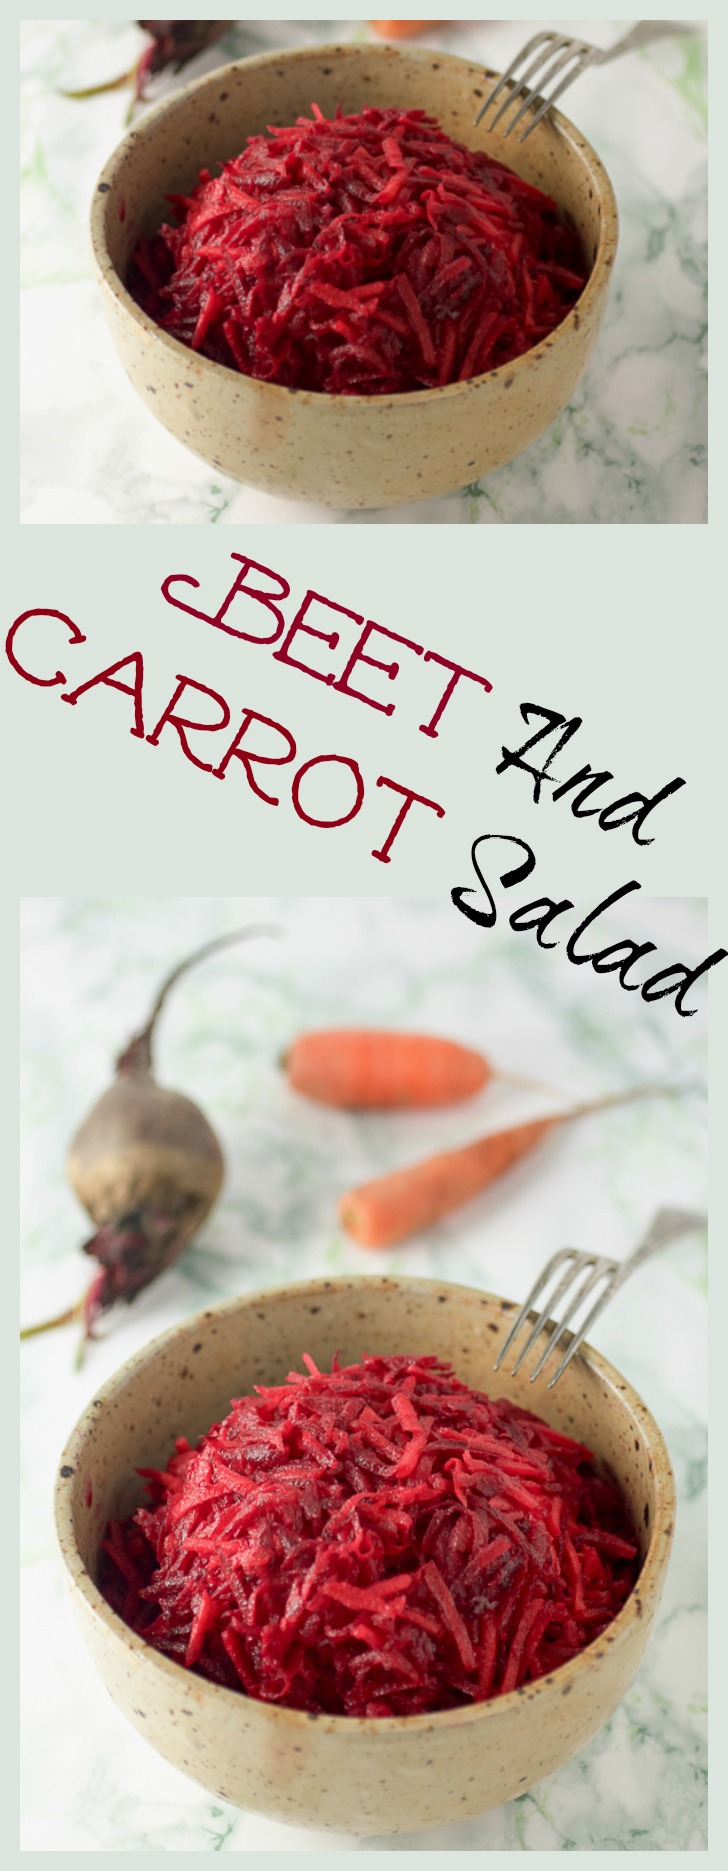 Grated beet and carrot salad: the healthiest meal you'll have all week.